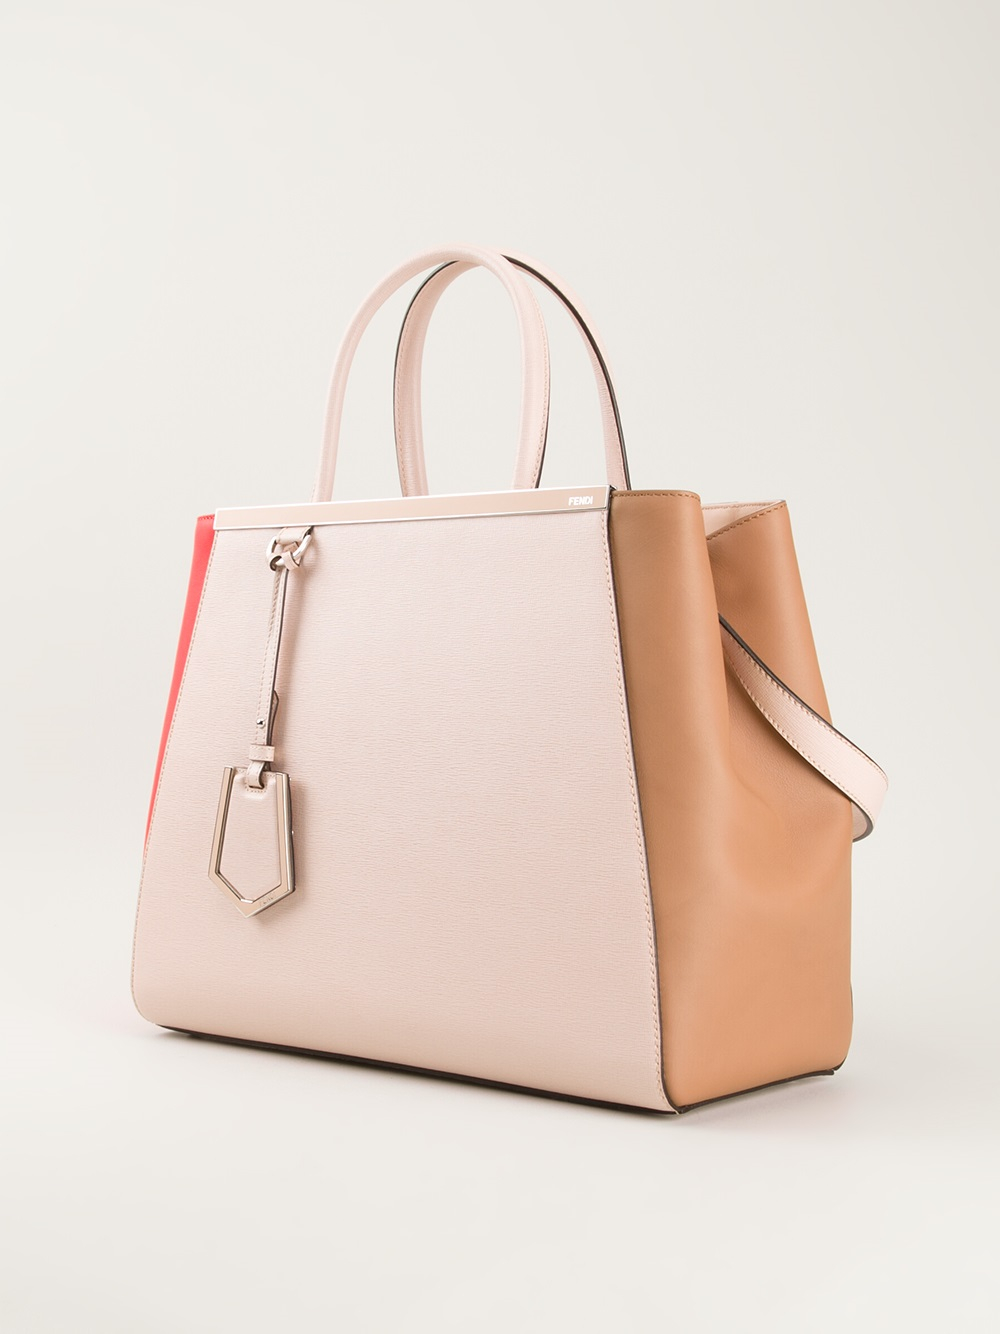 Fendi 2jours Colour Block Tote in Pink & Purple (Pink)